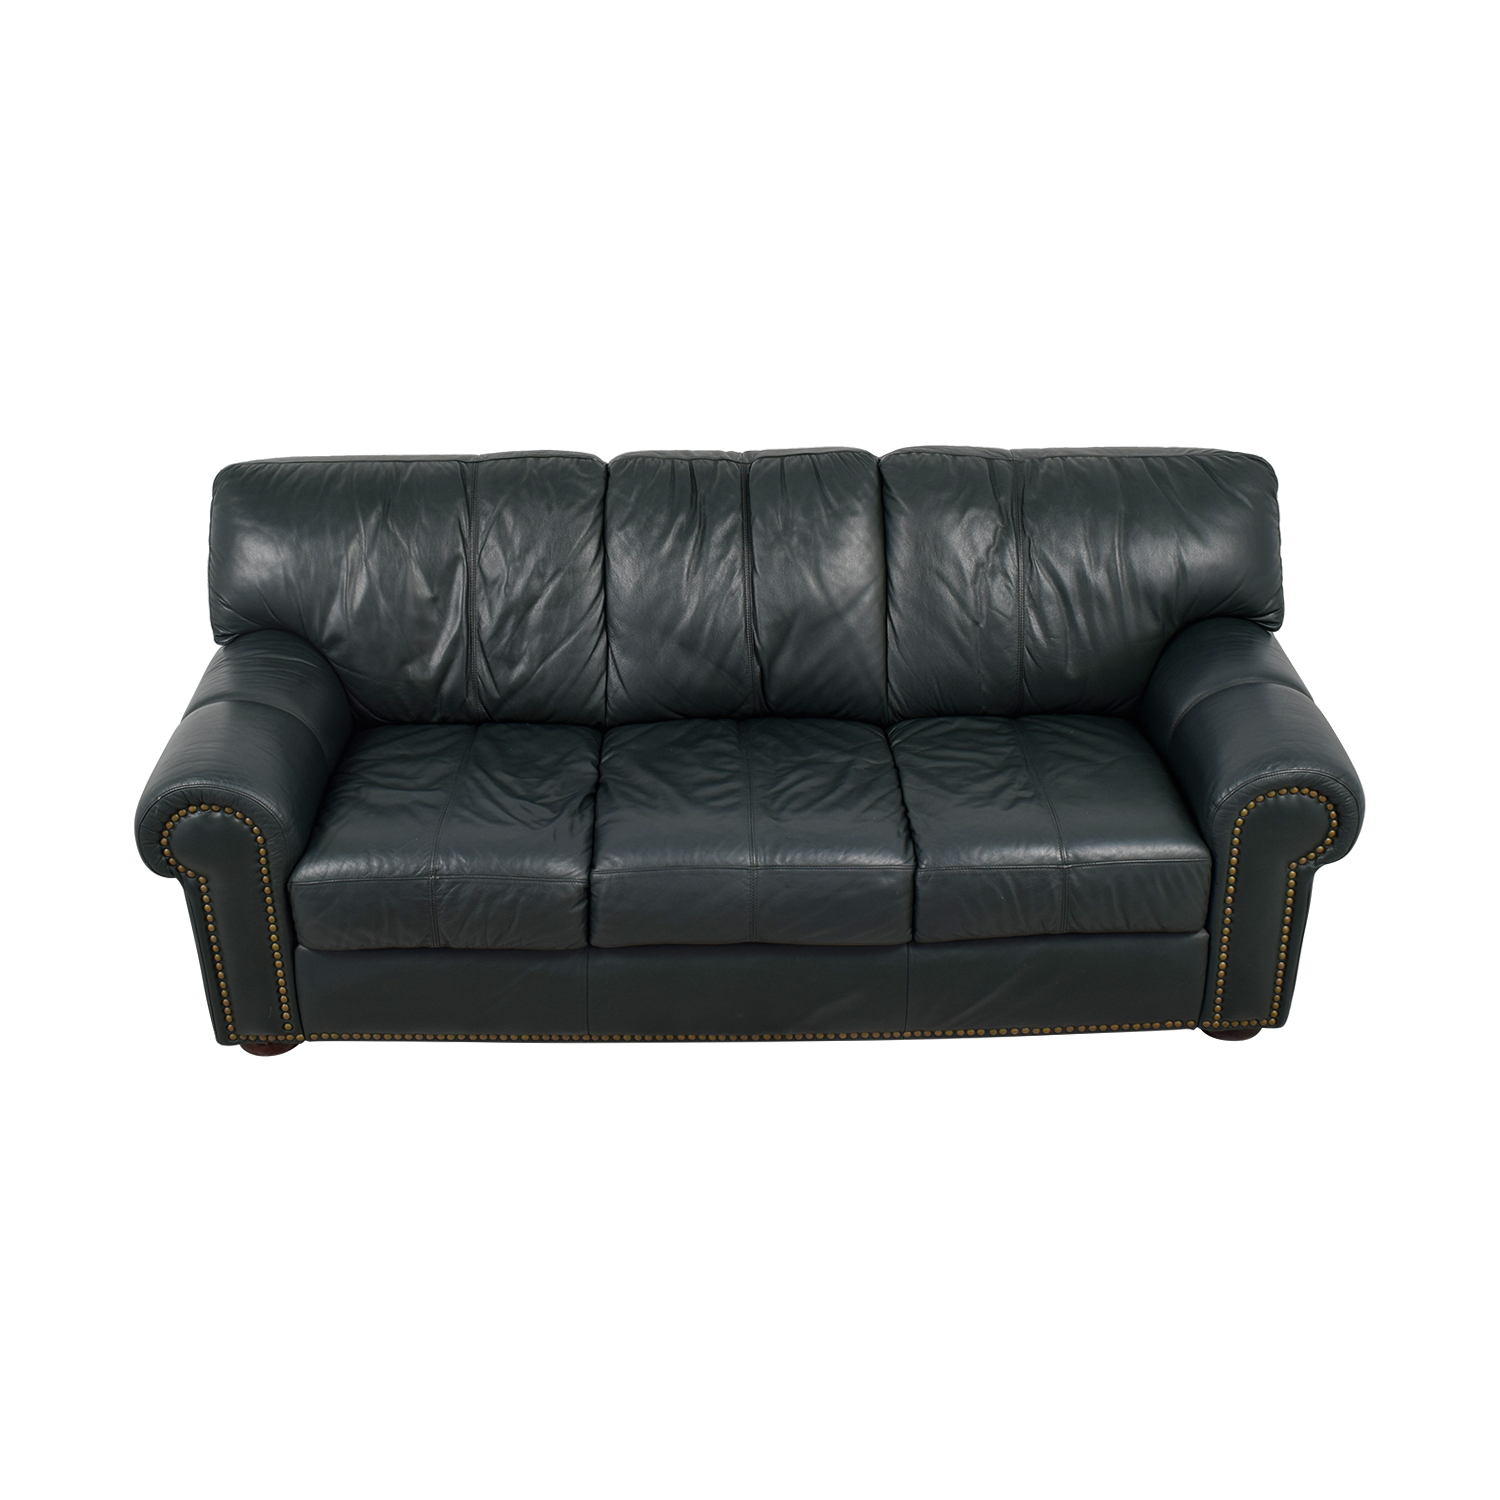 shop Leather Mart Green Leather Nailhead Rollarm Sofa Leather Mart